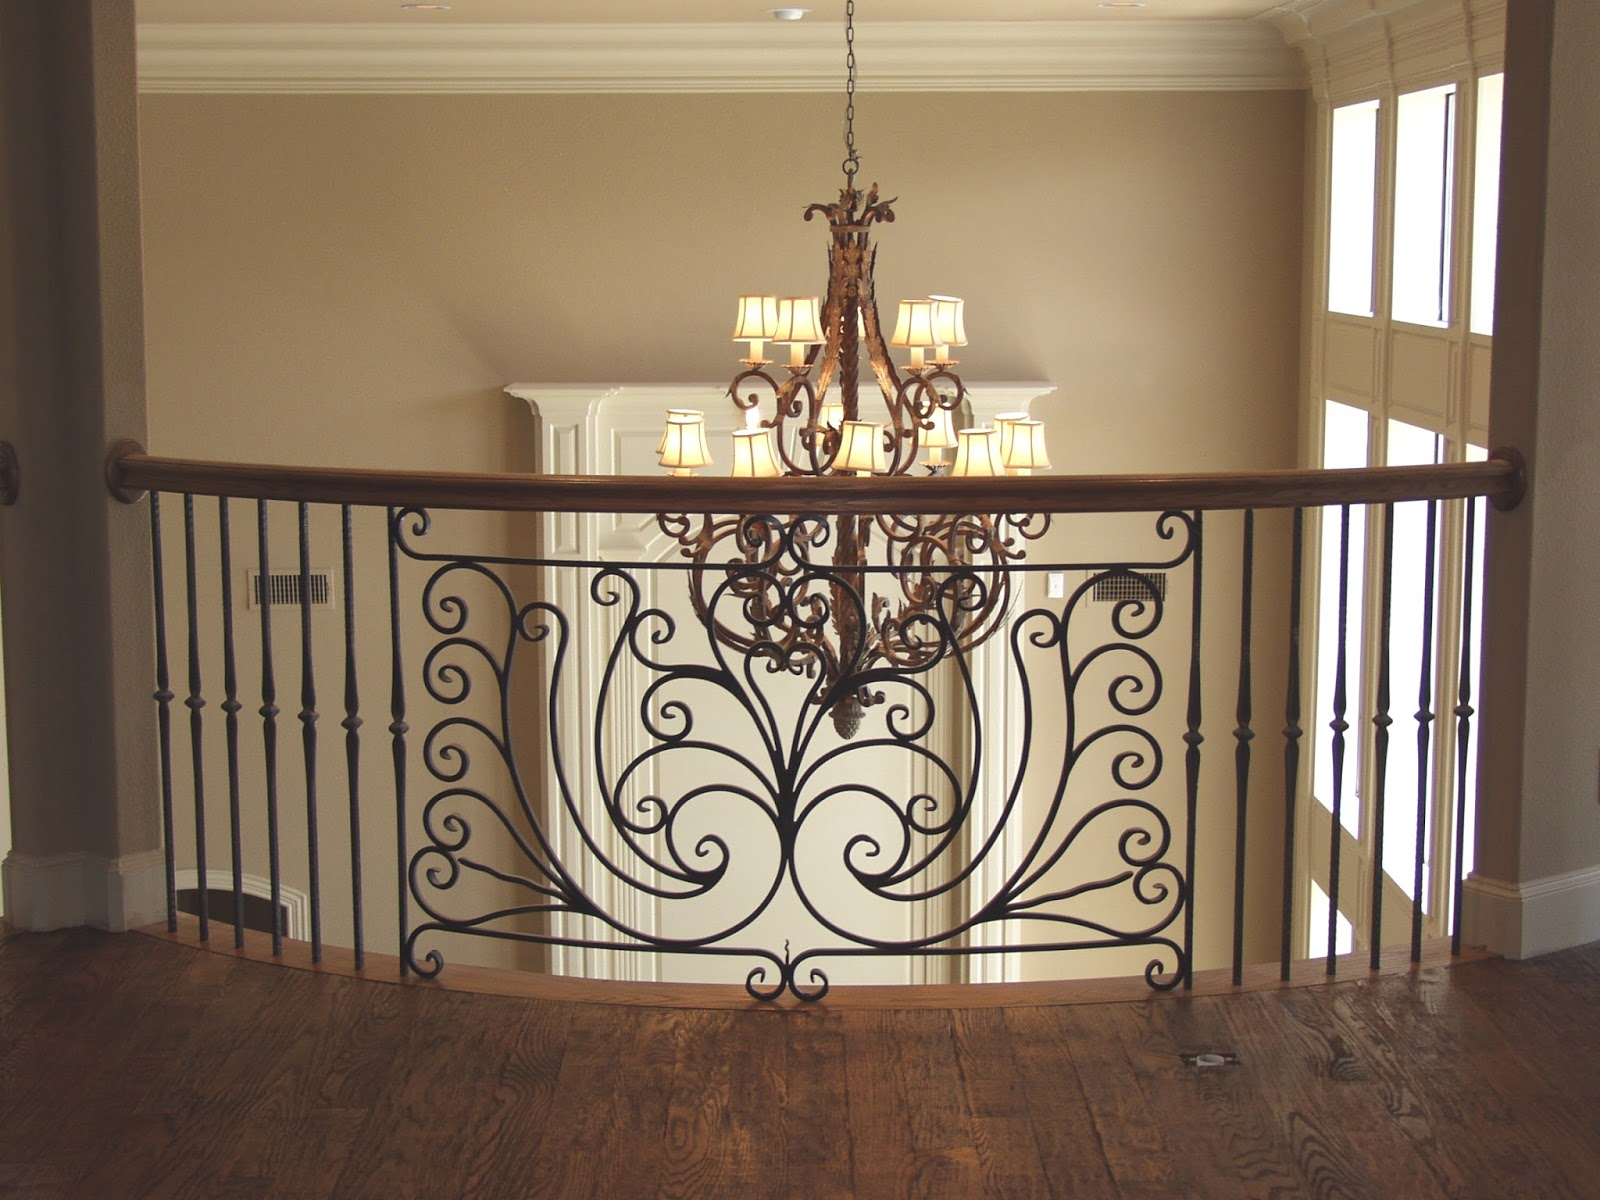 15 Wrought Iron Balusters Design Ideas | Neat Homes